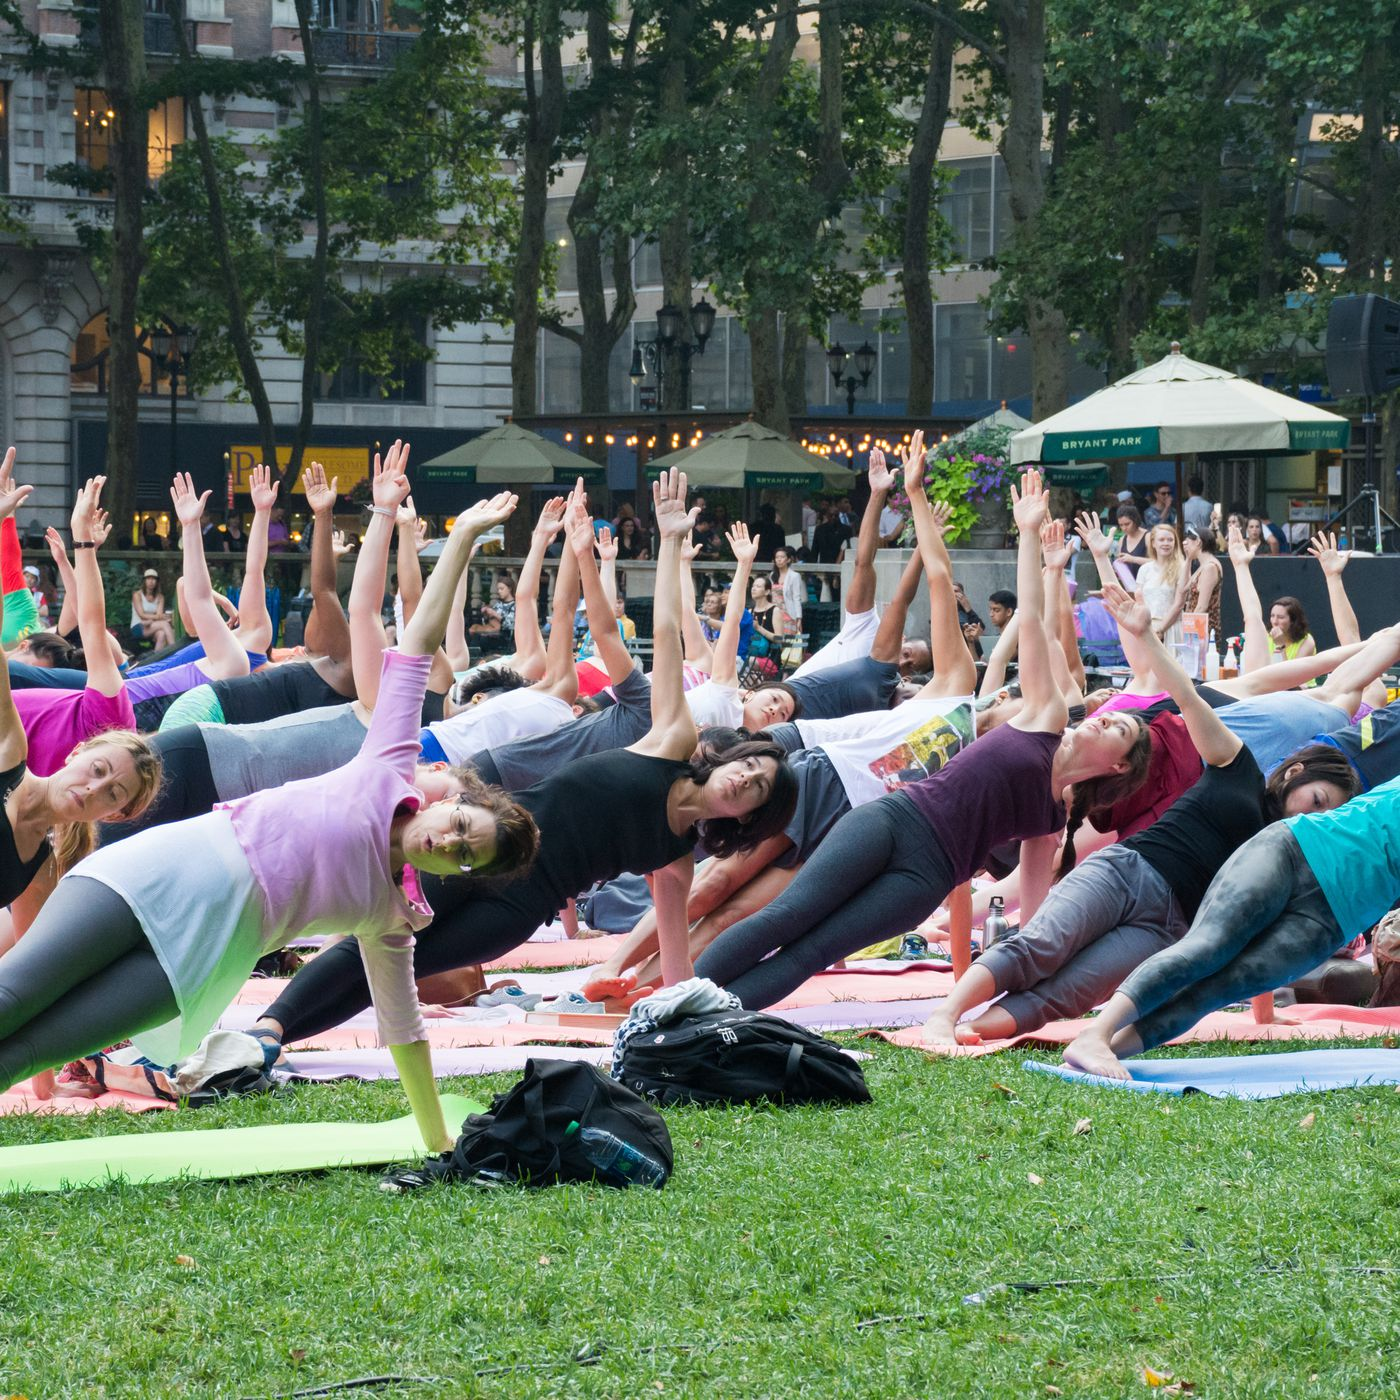 10 of NYC's best outdoor fitness cles - Curbed NY Yoga Maps on cricket map, nature map, hindu map, science map, nepal map, psychology map, acupressure map, buddhist cosmology map, feng shui map, vedic period map, chess map, spanish map, history map,